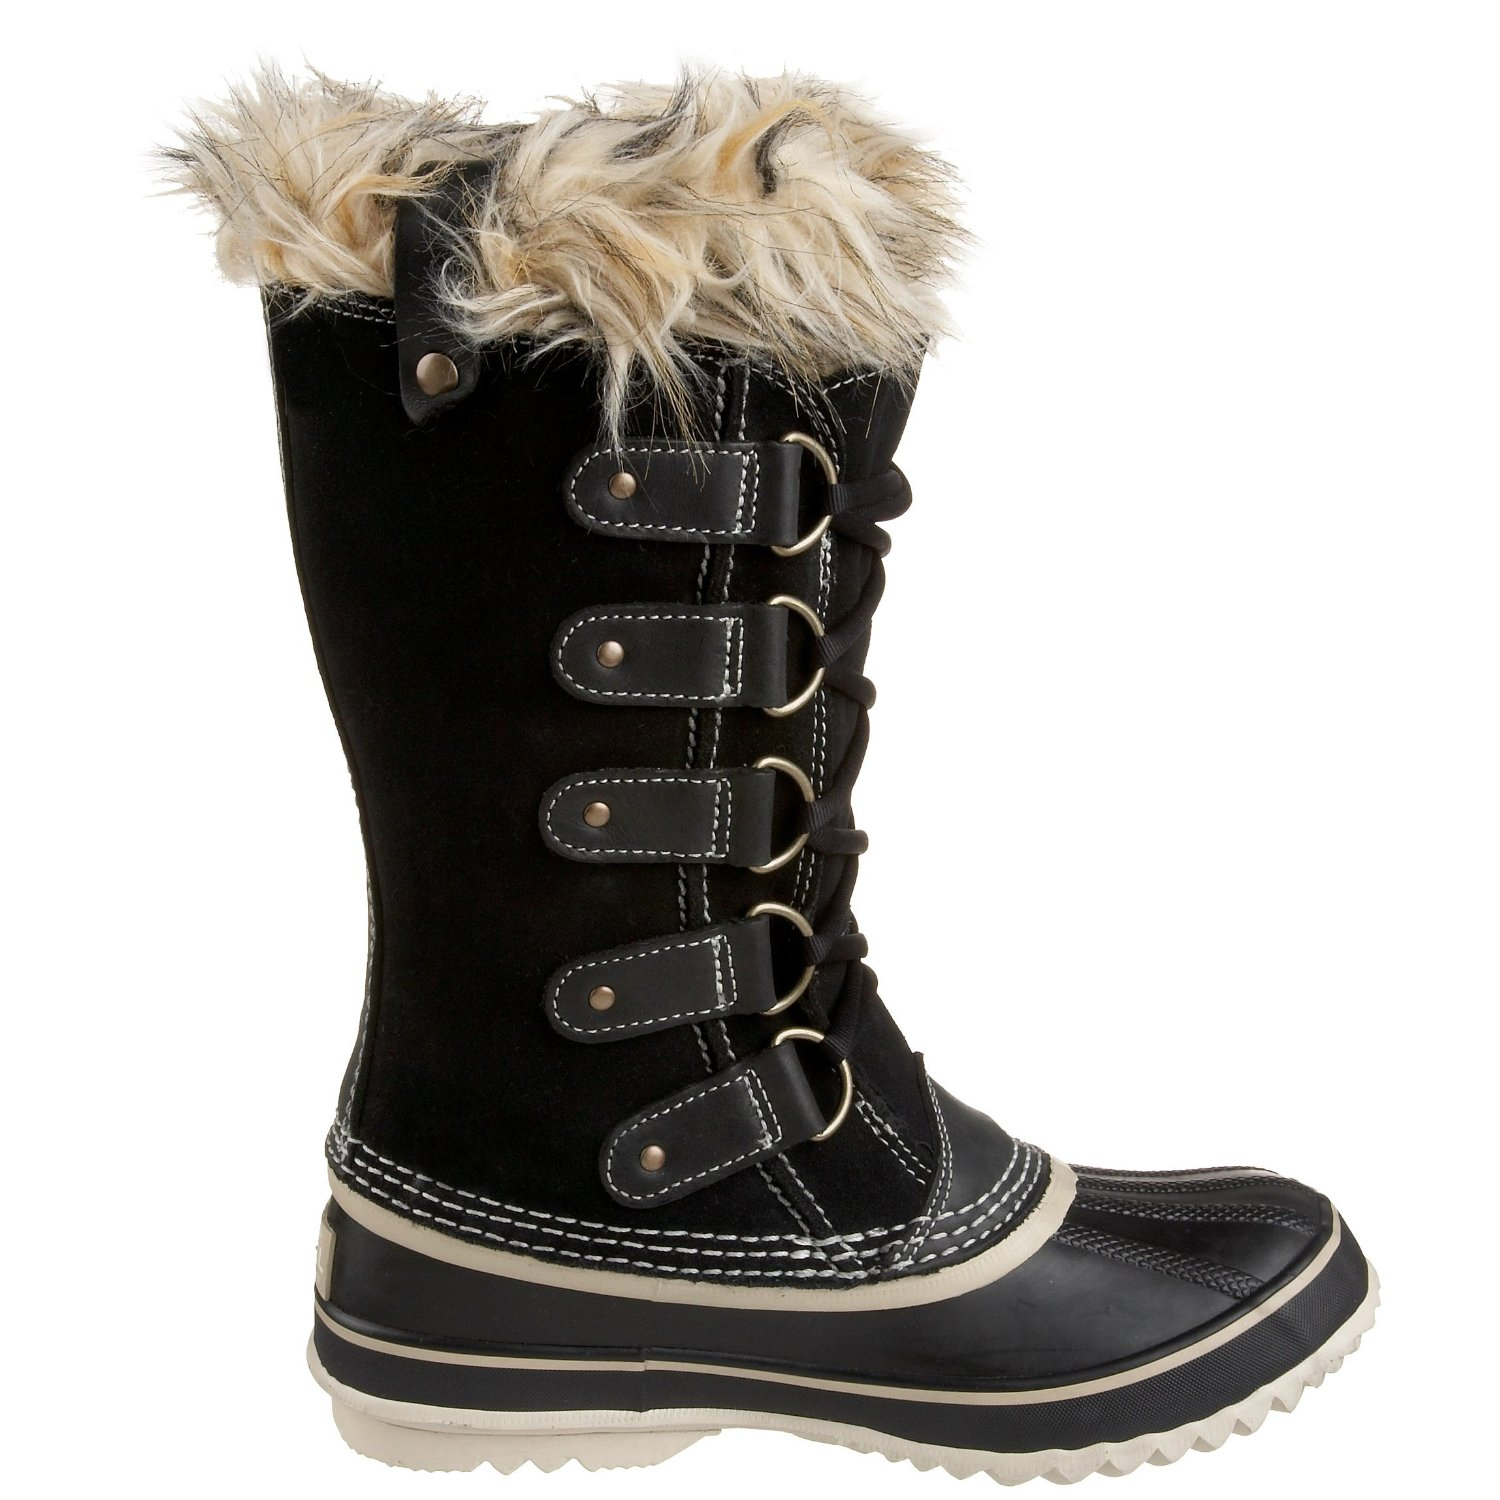 Best Snow Boots Womens | Planetary Skin Institute